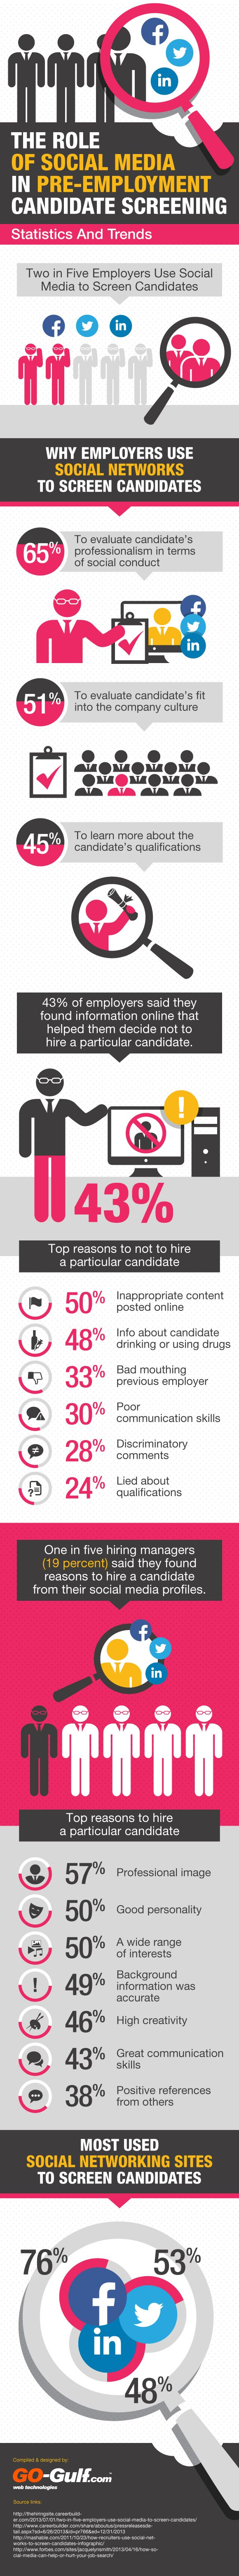 The role of social media In pre-employment candidate screening - your digital identity and brand is more important than you may think!